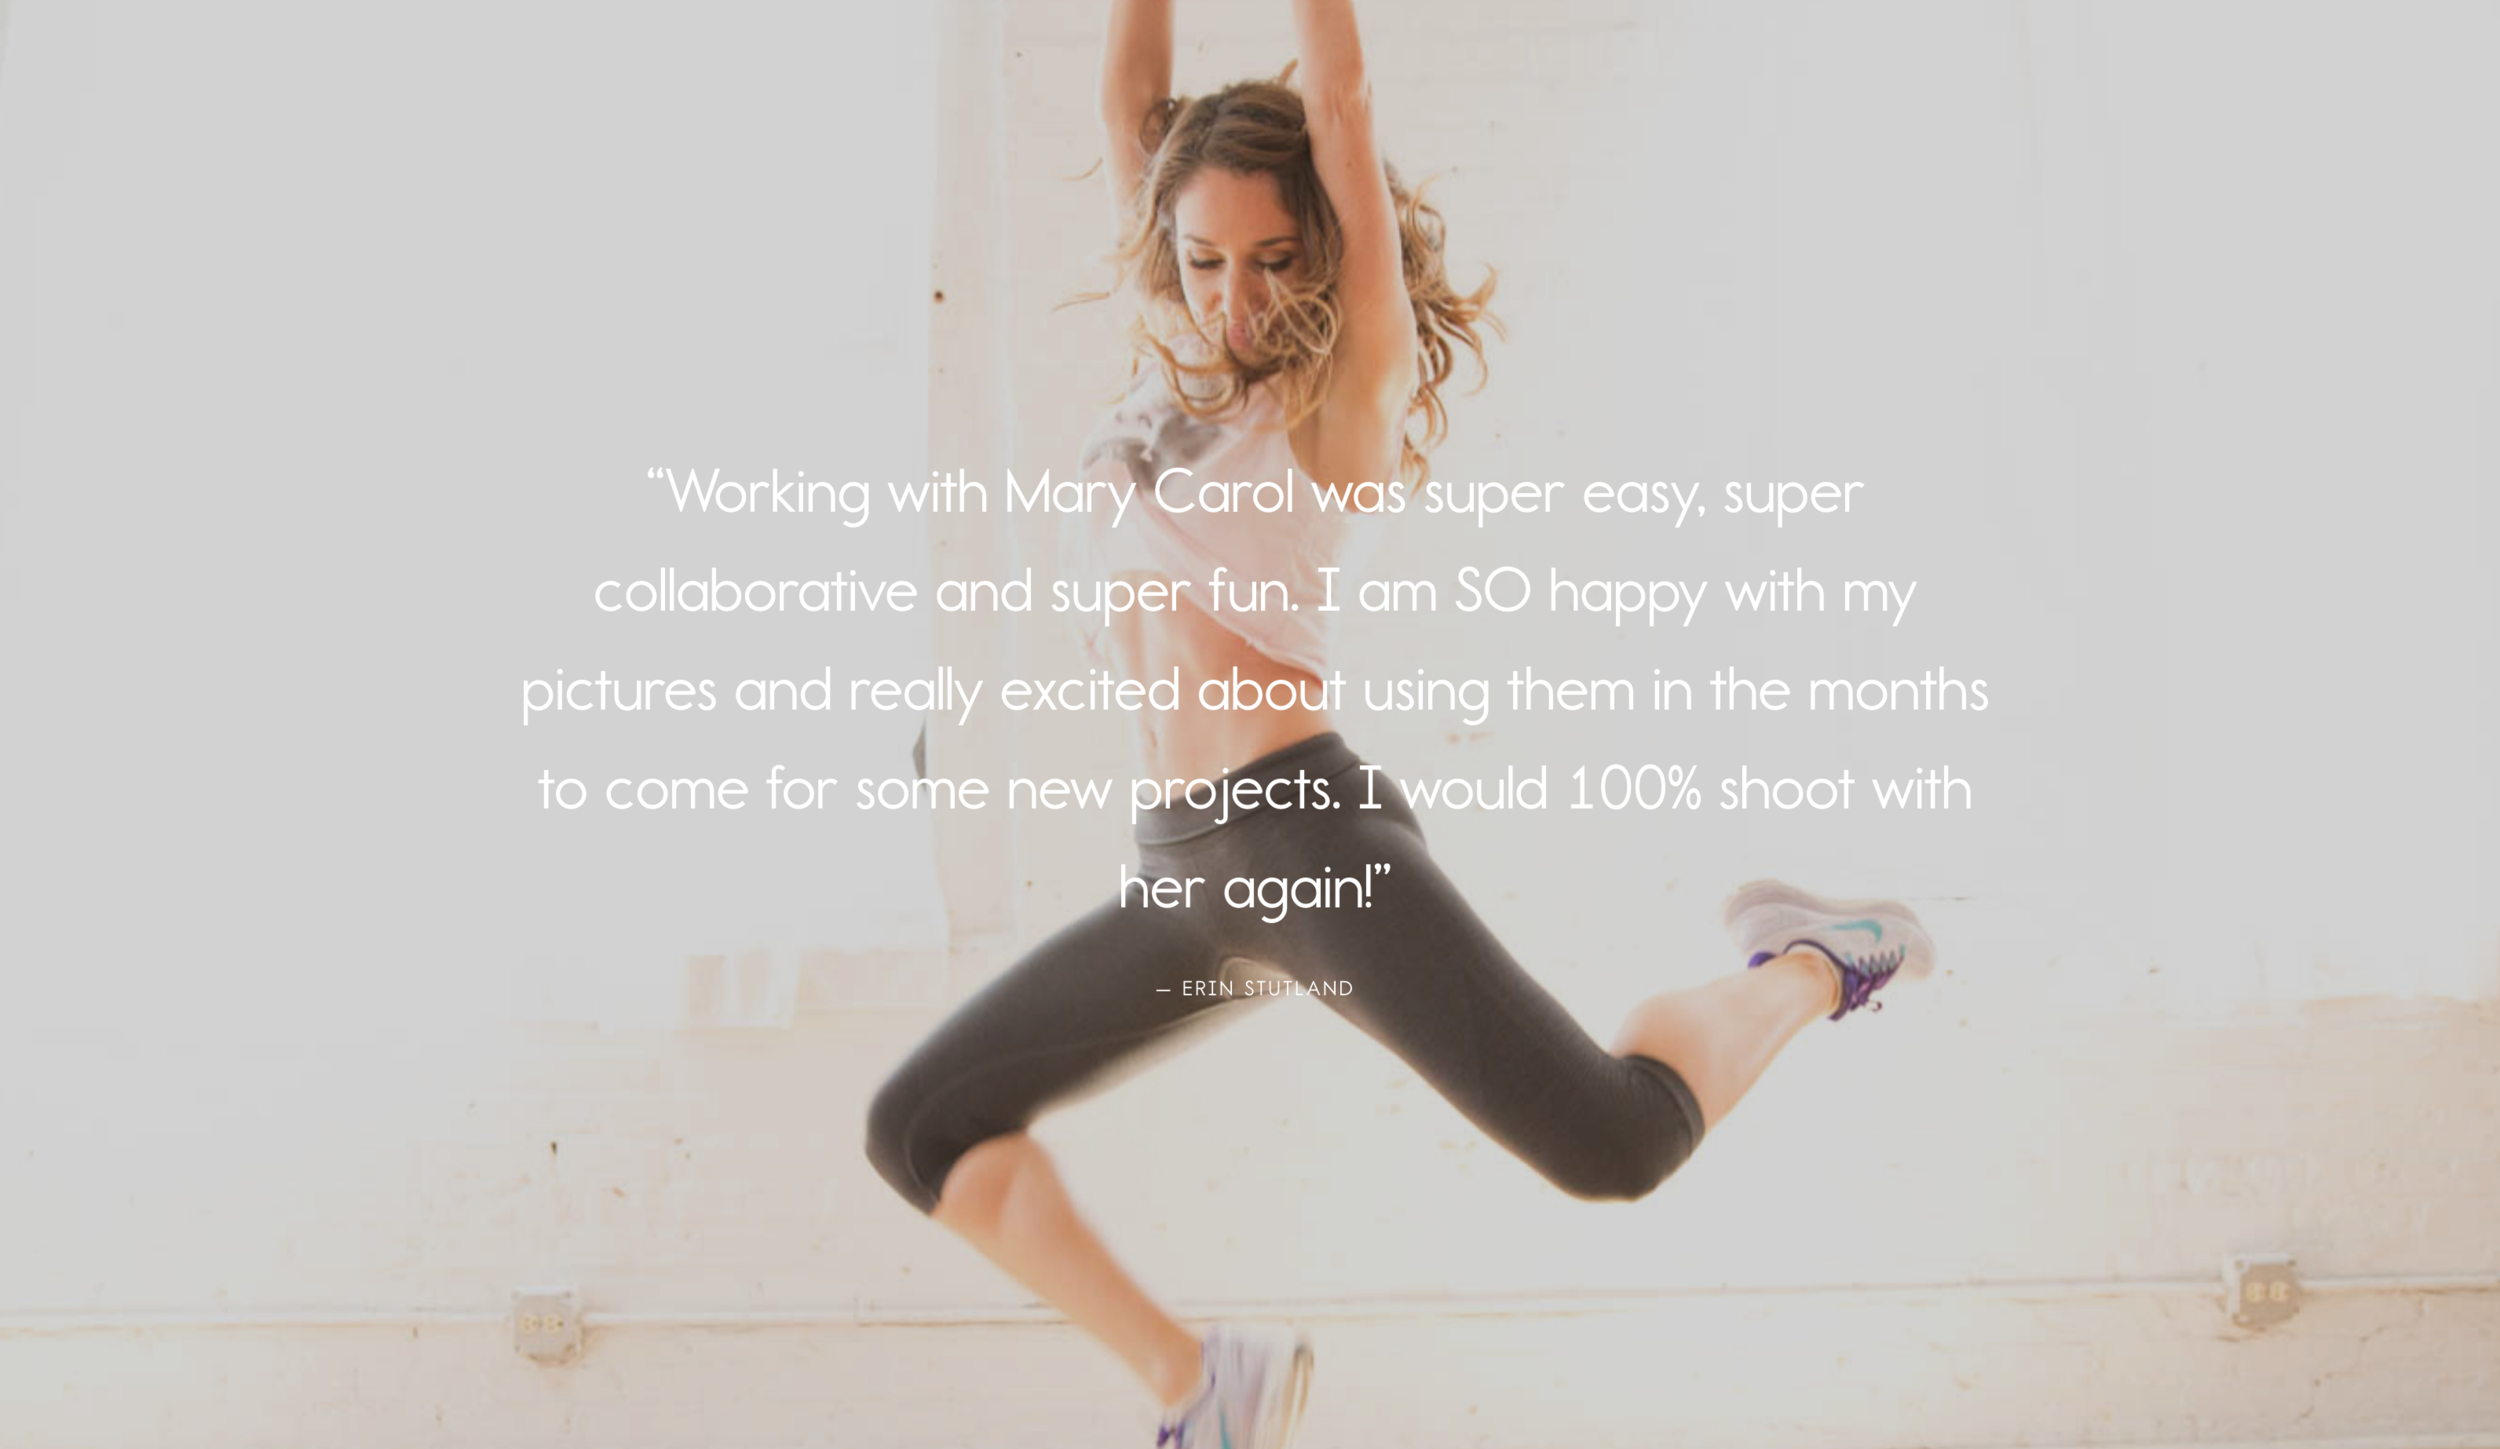 Erin-Stutland_Mantras-in-Motion_Mary-Carol-Fitzgerald-Photography.png